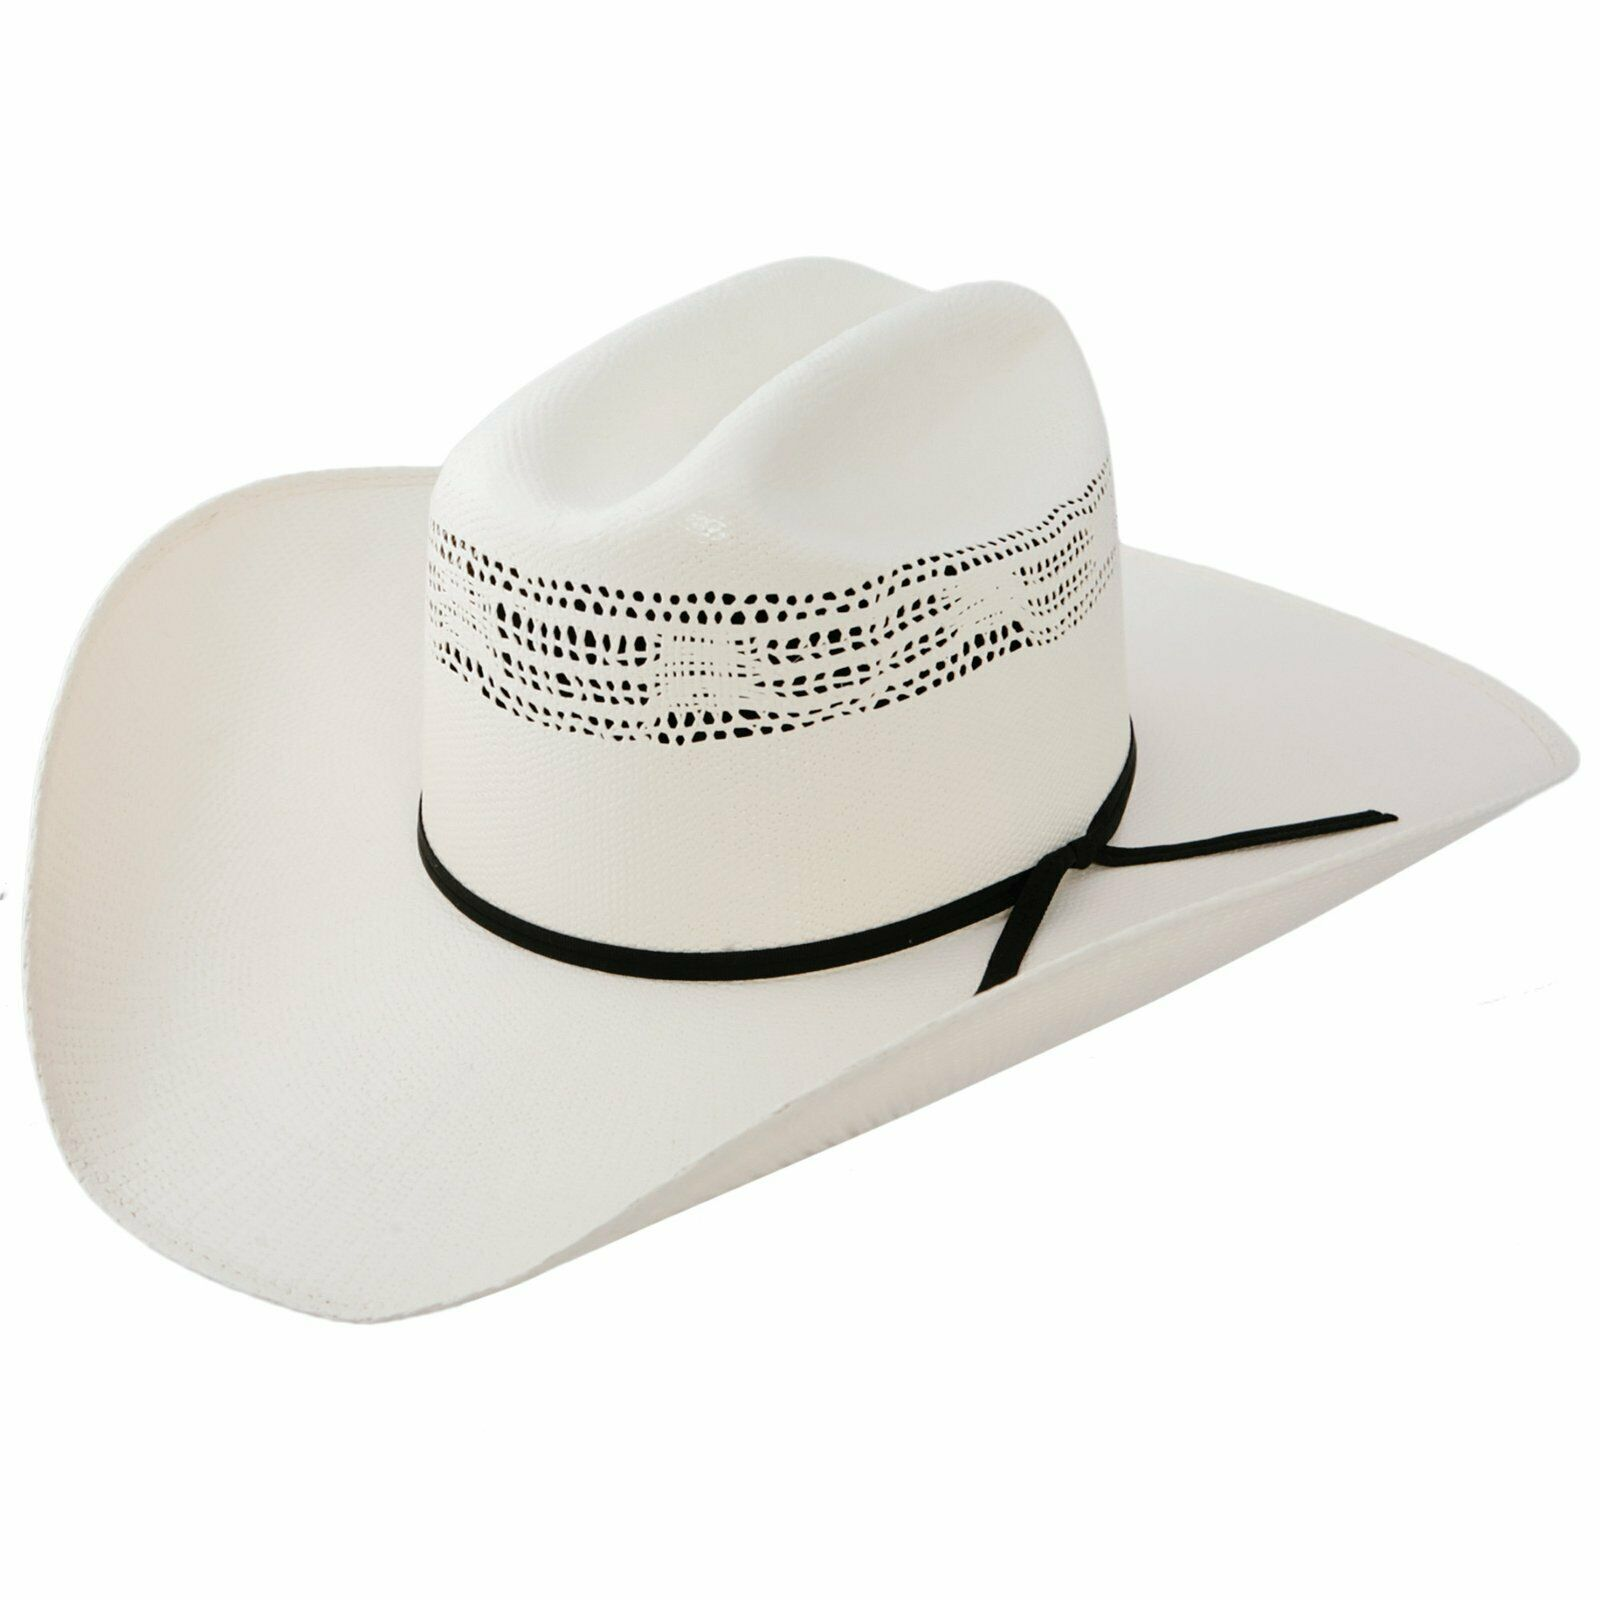 Resistol GARTH BROOKS Straw Cowboy Hat (Currently wears on tour) RARE | eBay